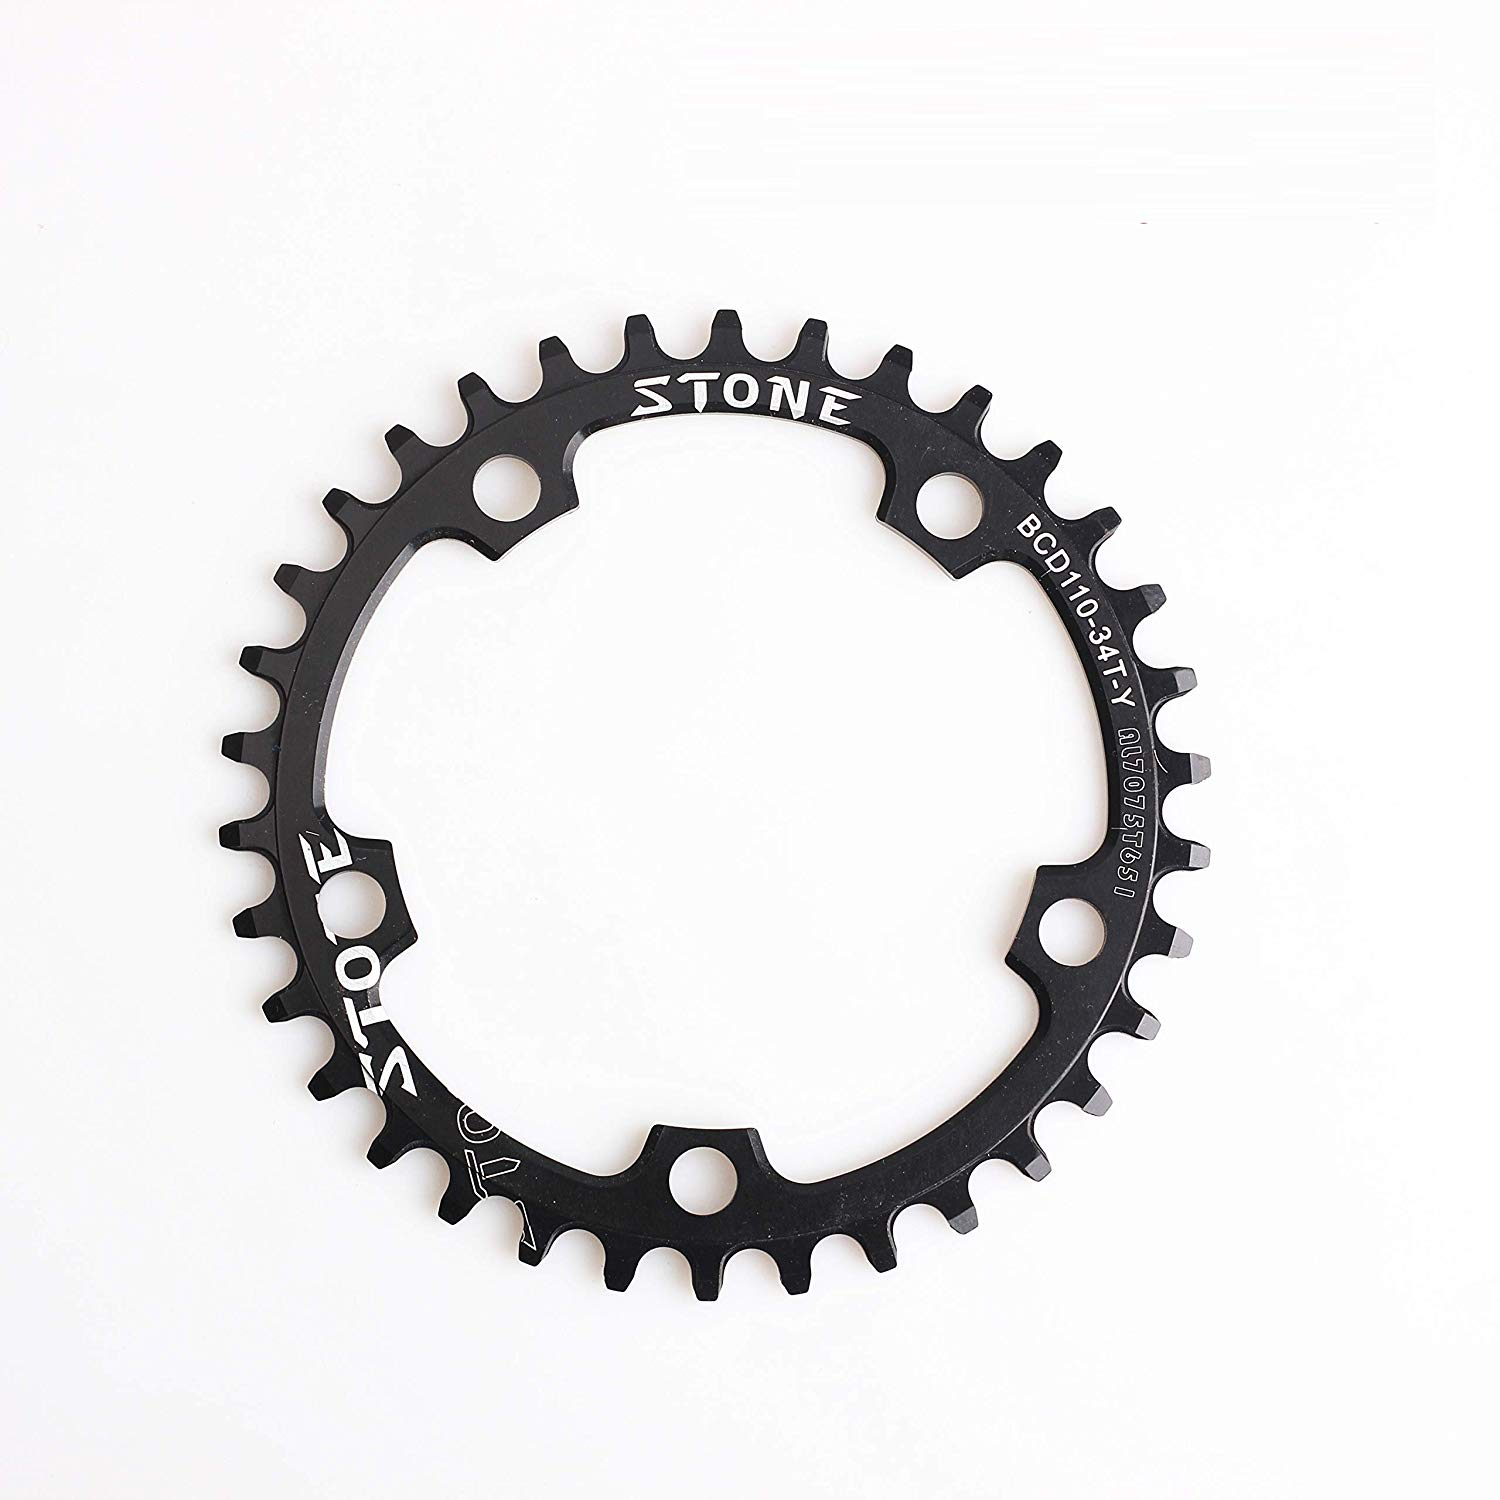 2d841a446cc ... S-Works Direct Mount. Get Quotations · Bicycle Chainring BCD110 34T Narrow  Wide NW Circle 5 Bolts 1x System Al7075 Made